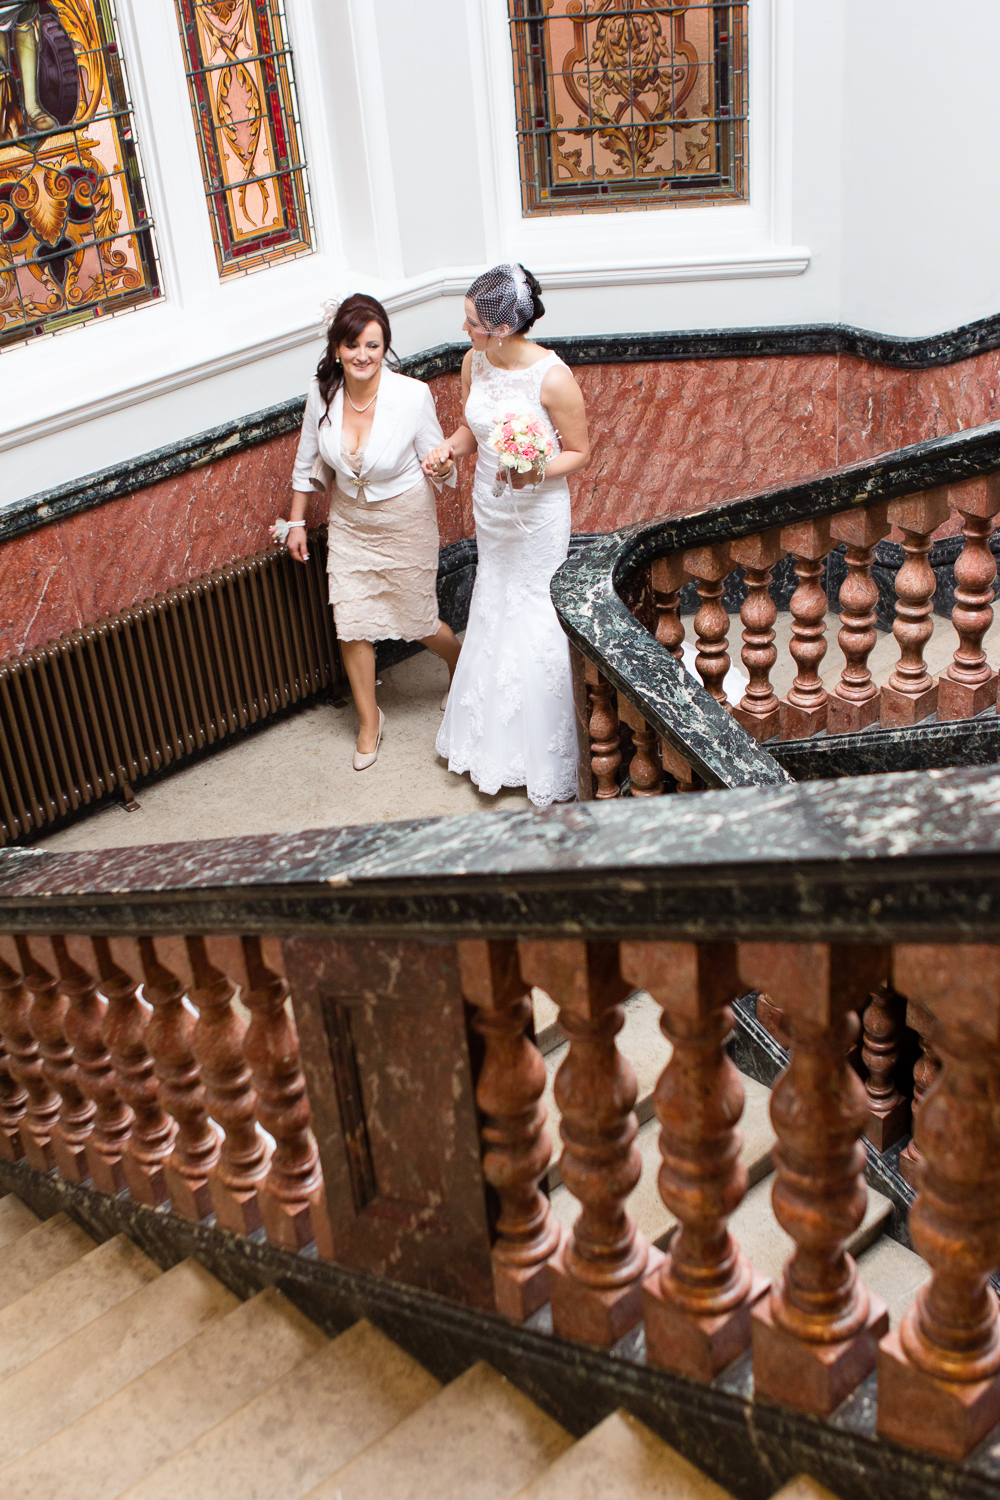 Wedding photography in Kingston - the bride and her mum walk down the hotel staircase, on their way to the church